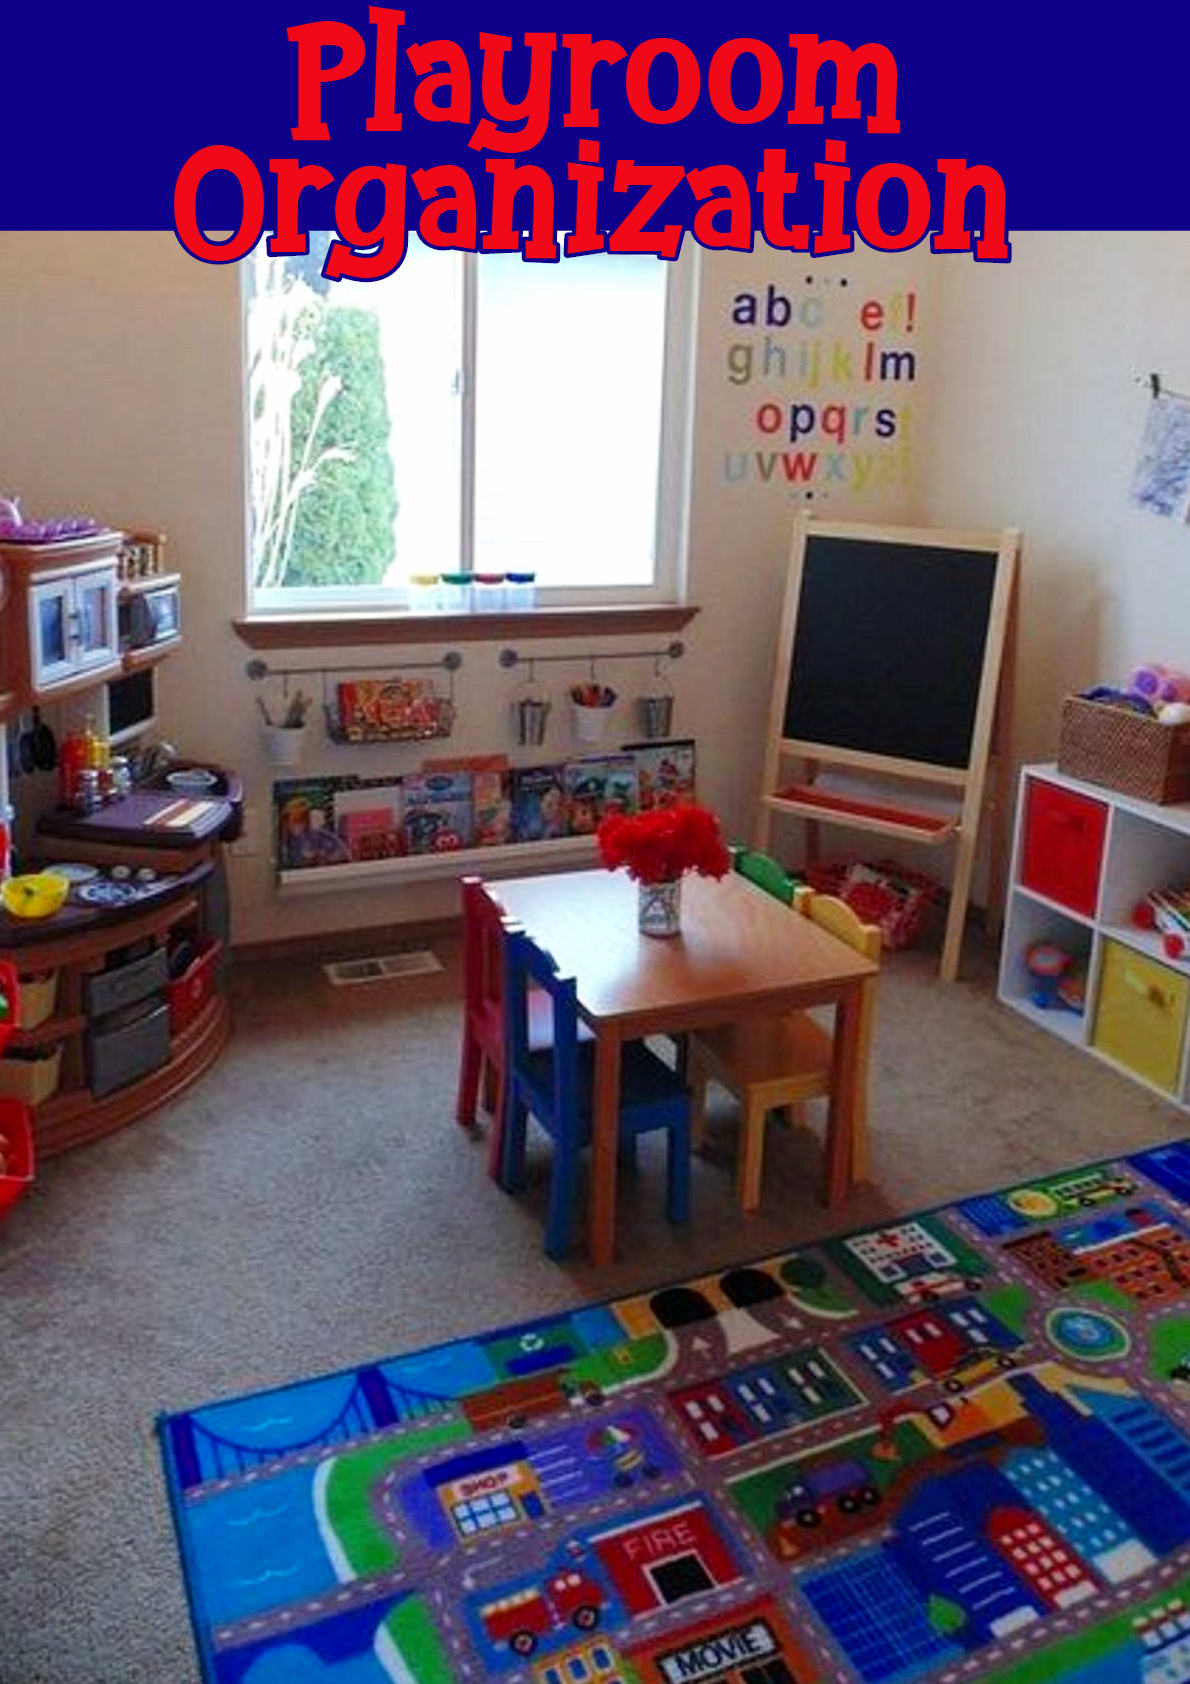 Playroom Organization Ideas - let's declutter and organize toys in the playroom, living room, bedroom, in your kids toy closet or their room even if you're on a budget with these cheap DIY Dollar Store toy storage ideas for small spaces. Organizing toys in kids rooms and other toys storage solutions for small spaces - organize kids toys, games, books, stuffed animals, action figures, hot wheels and legos with these home organization ideas and tips - this is how to organize toys and declutter toy clutter